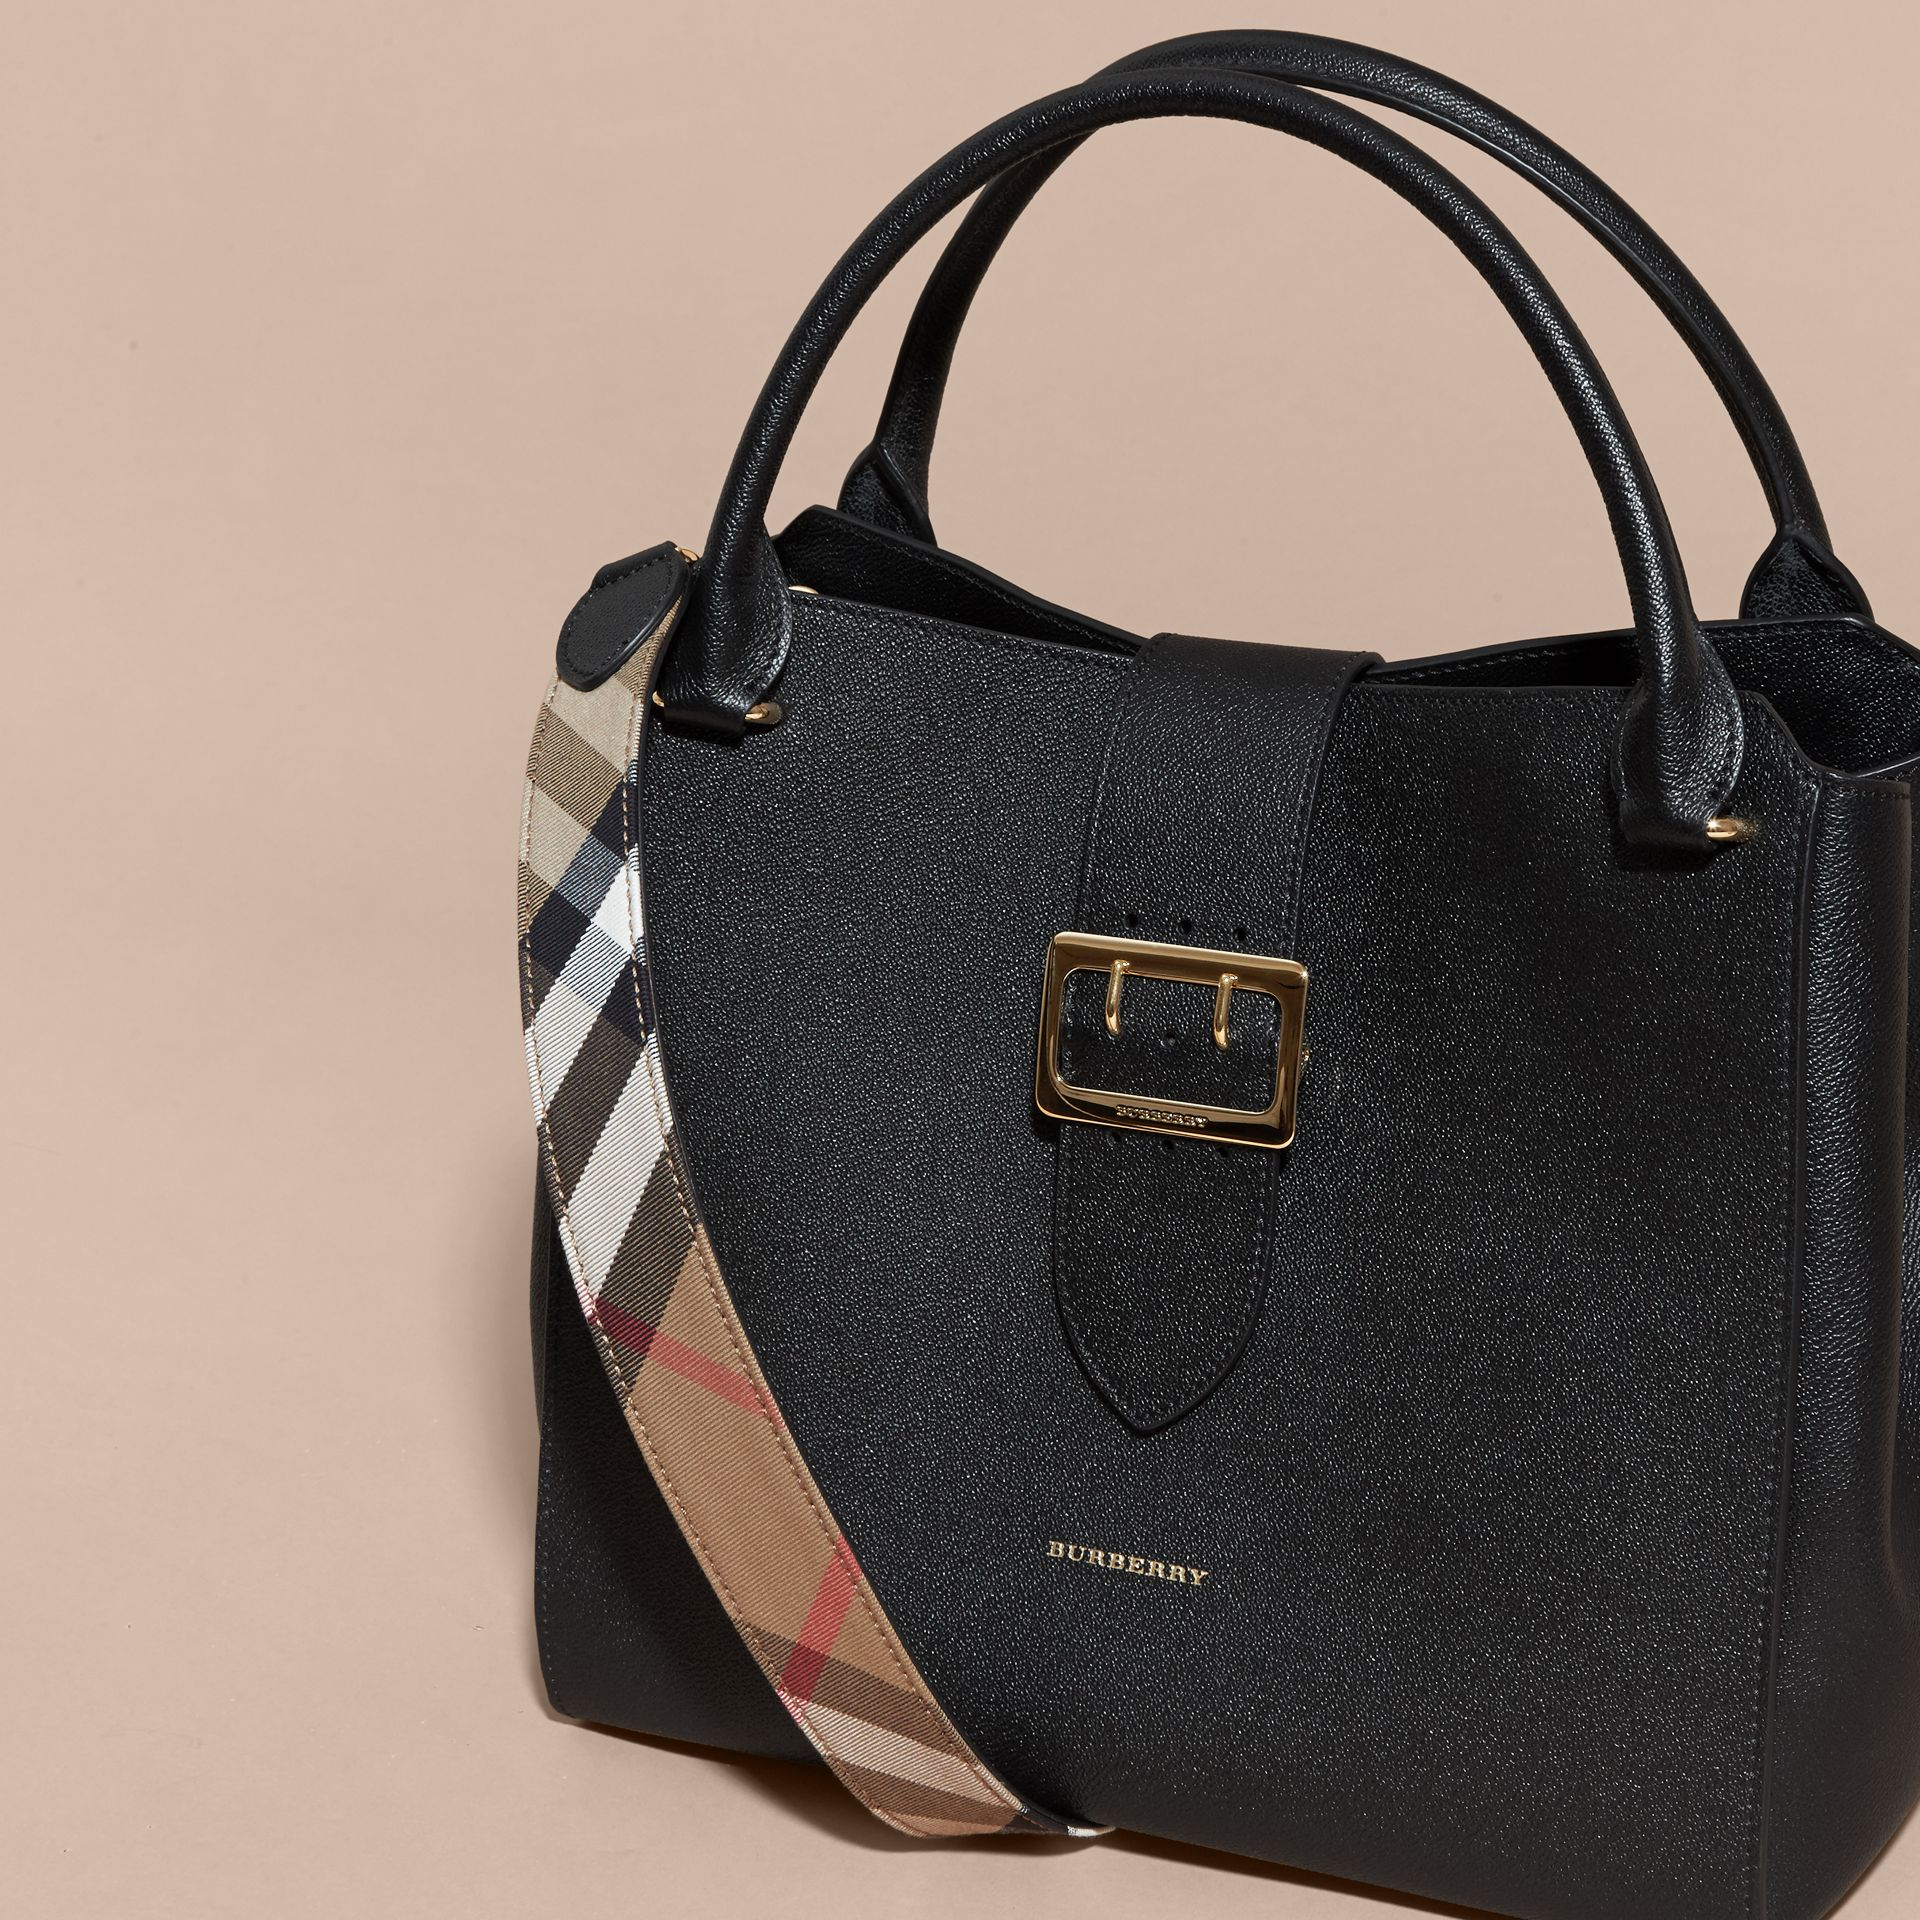 Borsa tote The Buckle grande in pelle a grana (Nero) - Donna | Burberry - immagine della galleria 8